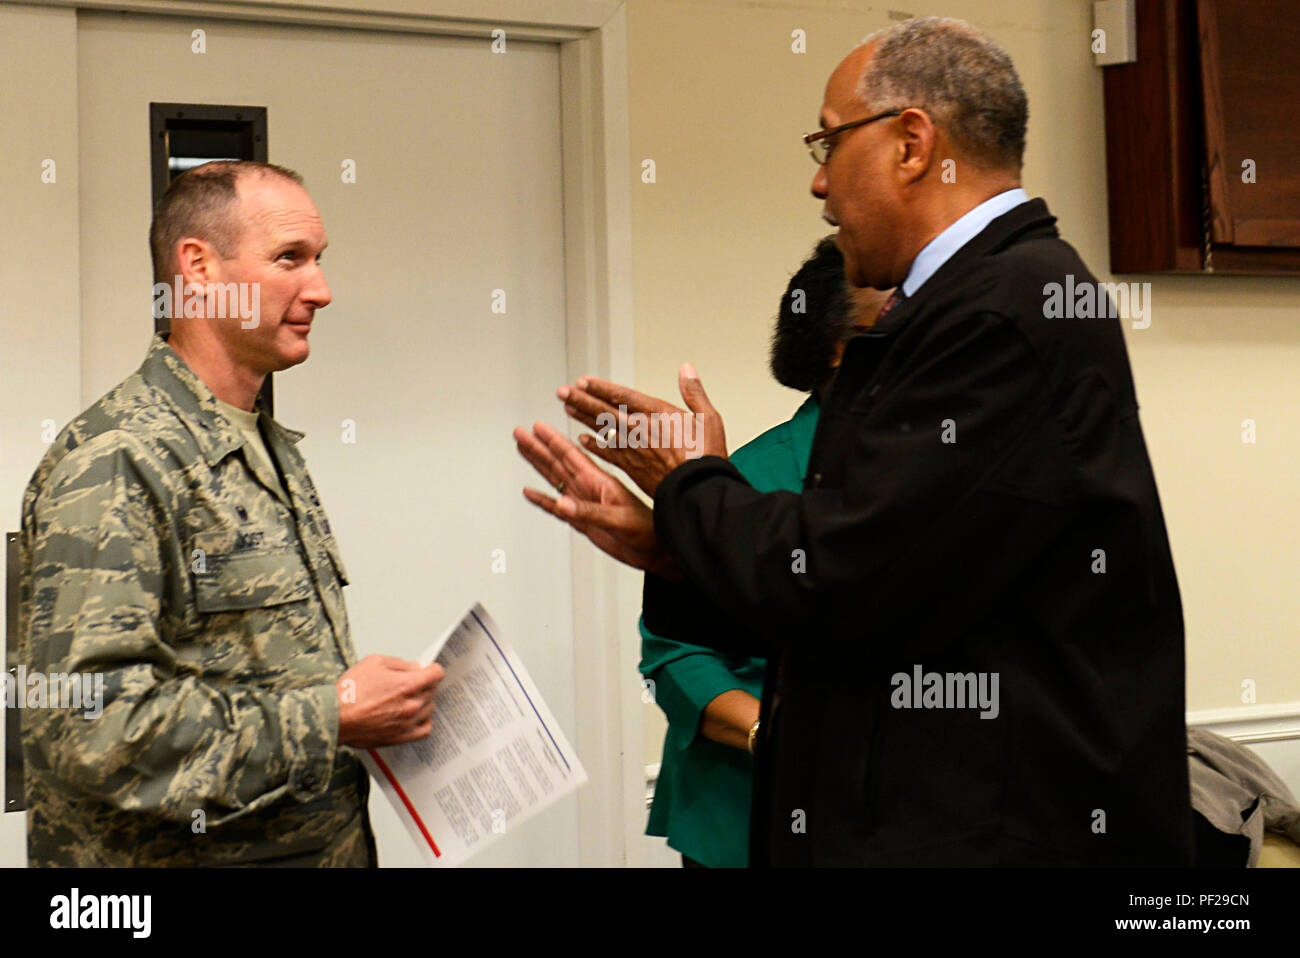 U.S. Air Force Col. Stephen Jost, 20th Fighter Wing commander, talks with South Carolina State Guard Col. William Oden, Retirees on Call Shaw coordinator, during a deployed family dinner at Shaw Air Force Base, S.C., Feb. 22, 2016. Team Shaw leadership attended the event and showed their support for deployed members by conversing with their families and program sponsors. (U.S. Air Force photo by Airman 1st Class Christopher Maldonado) - Stock Image